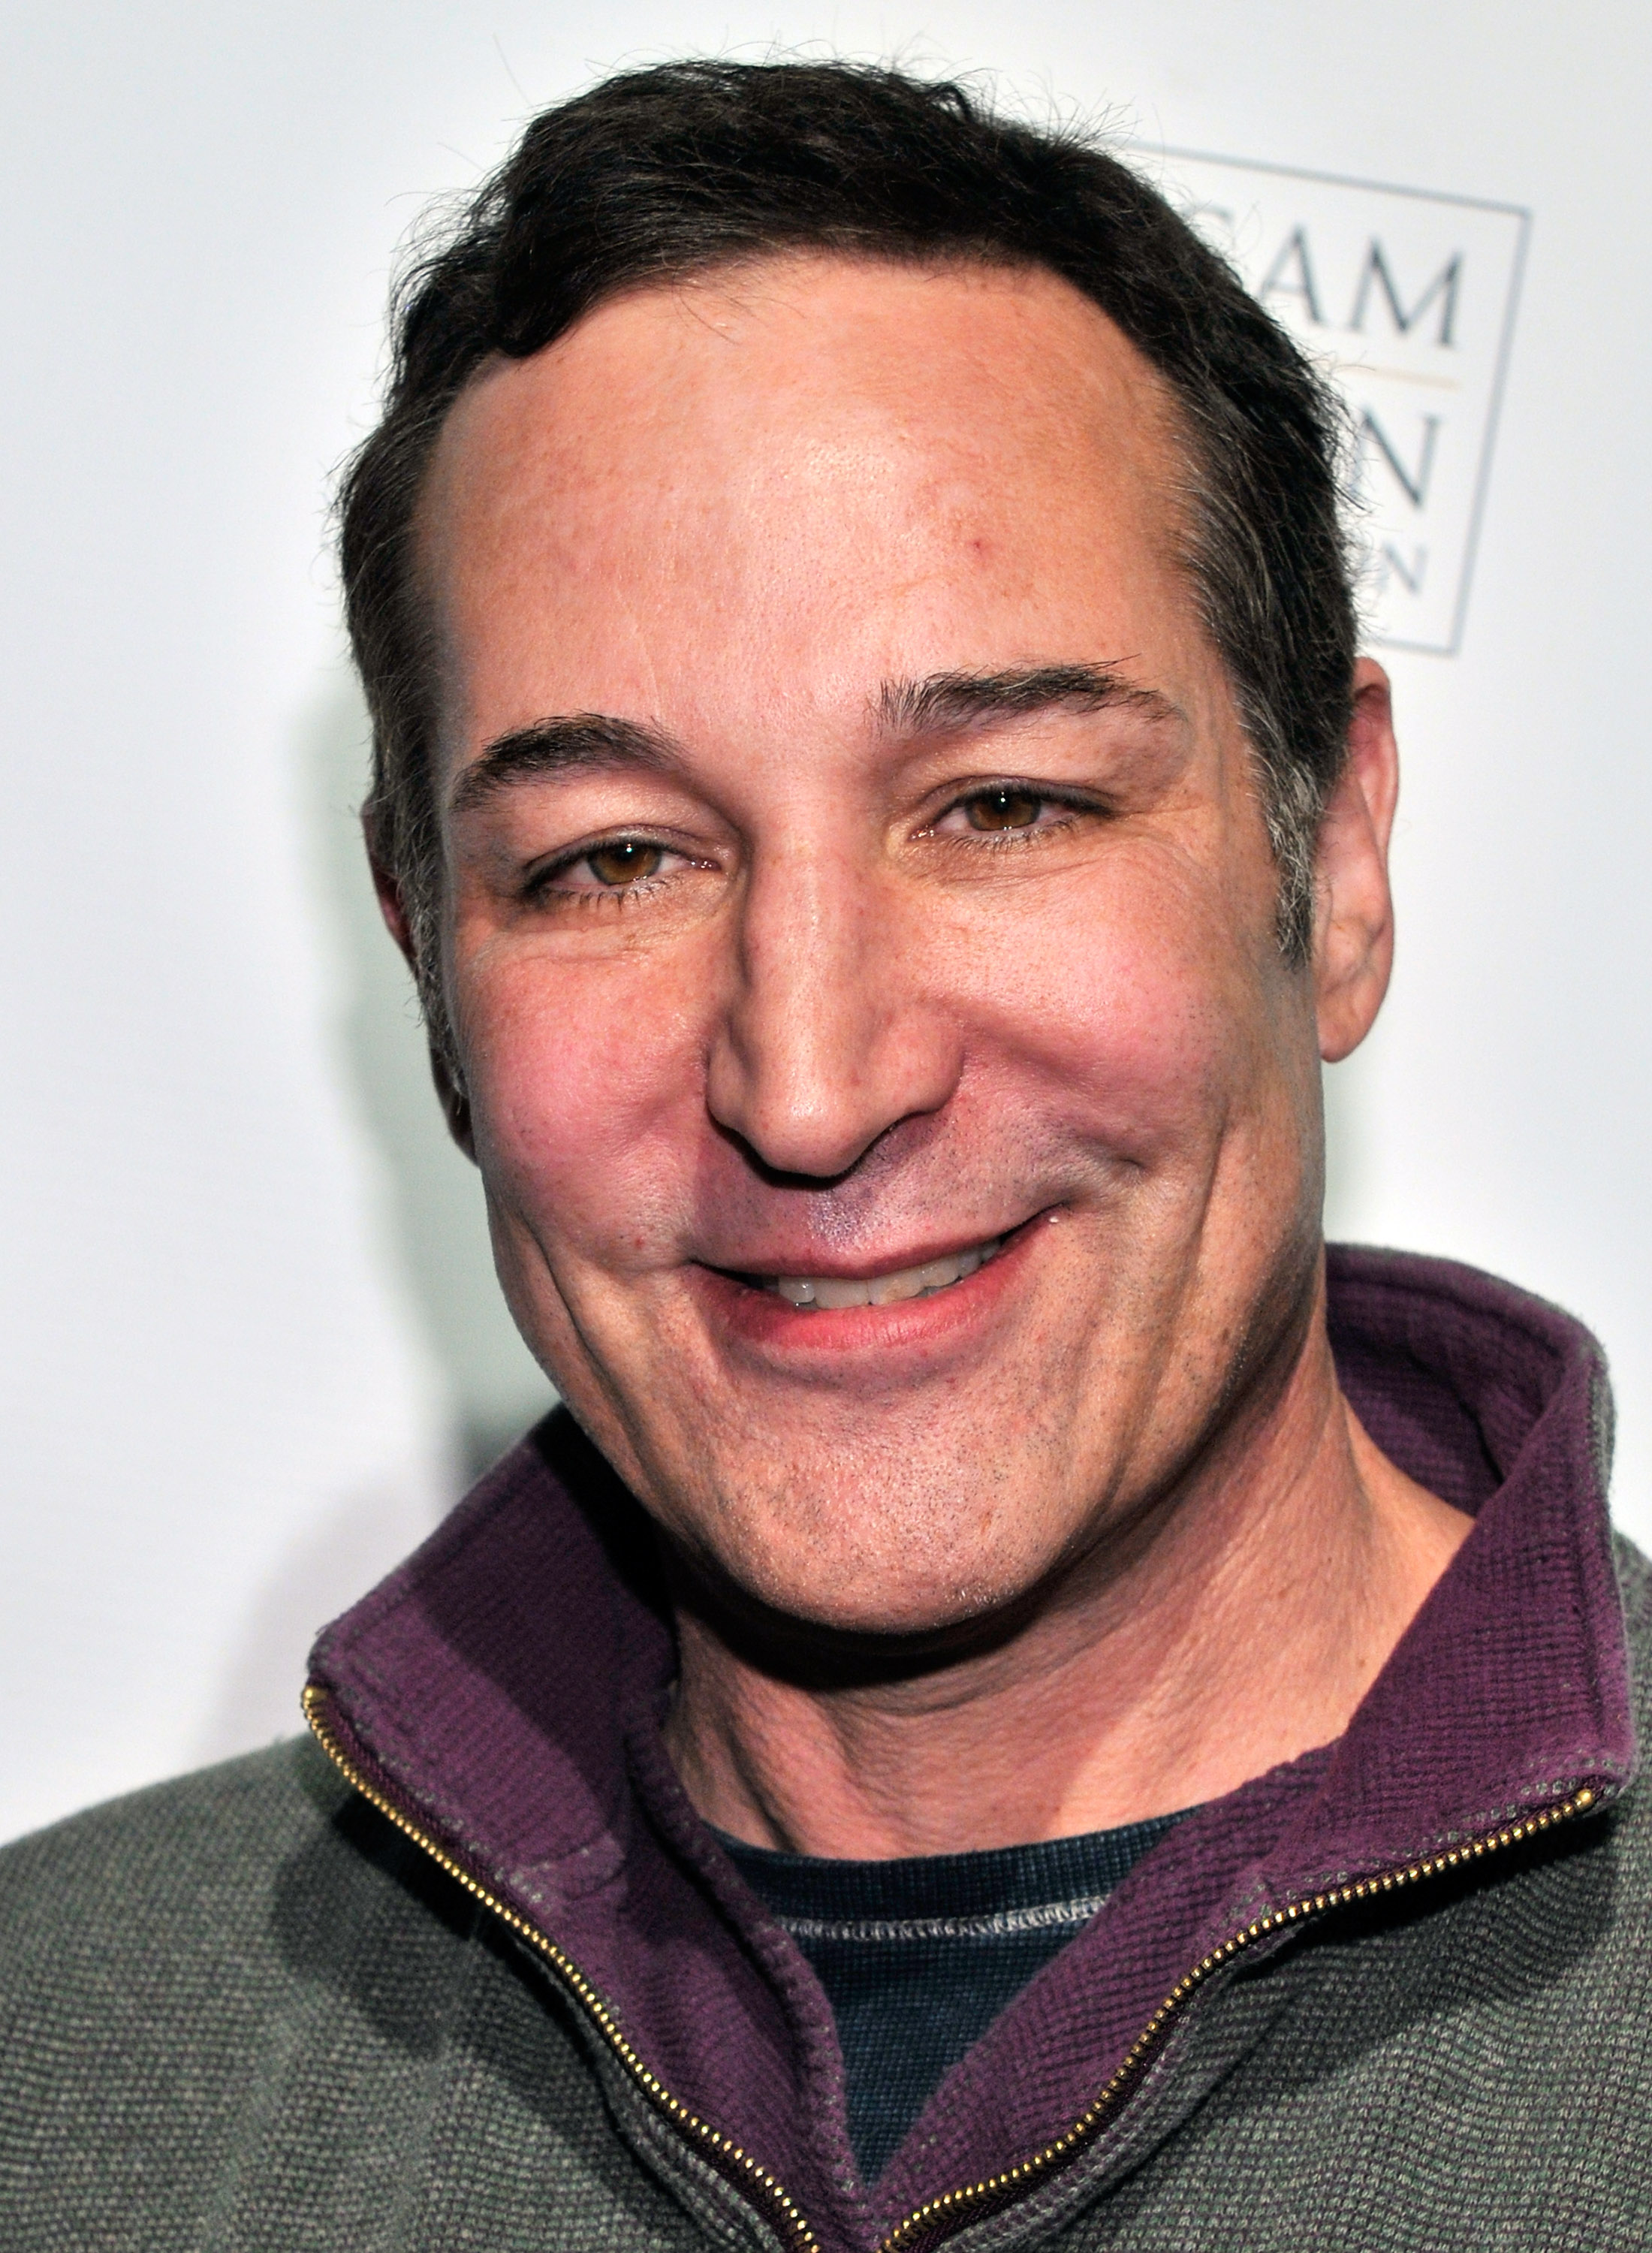 Television producer/writer Sam Simon arrives at the  All In For CP  Celebrity Charity Poker Tournament  at The Venetian Resort Hotel Casino on December 11, 2010 in Las Vegas, Nevada.